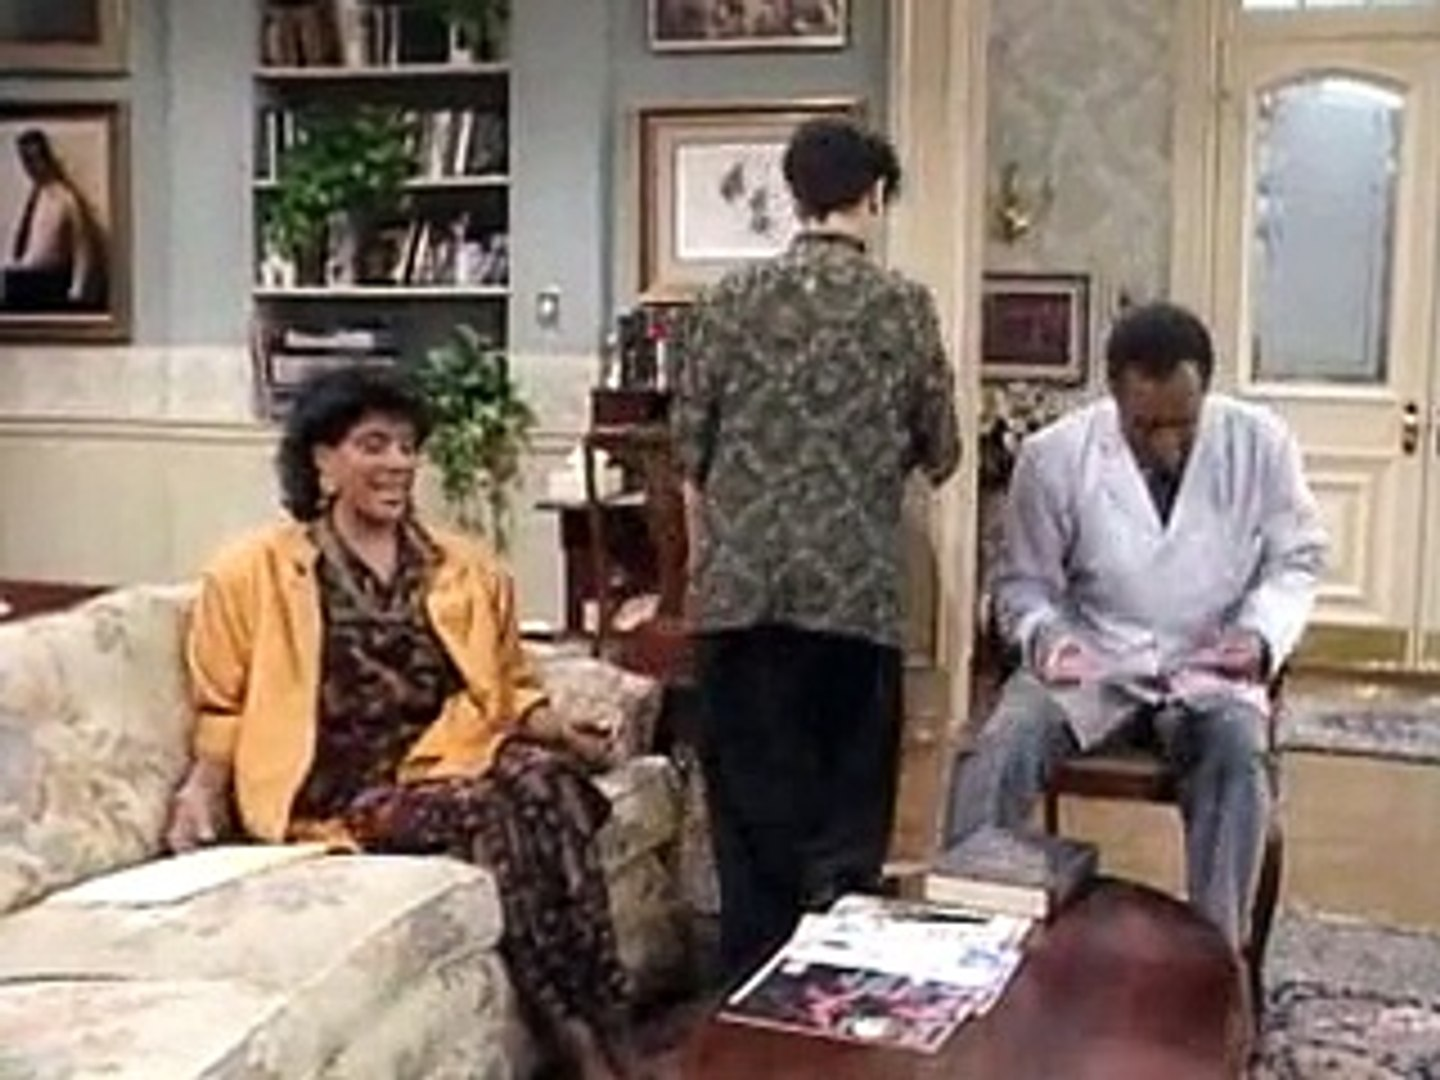 The Cosby Show S02E23 The Card Game